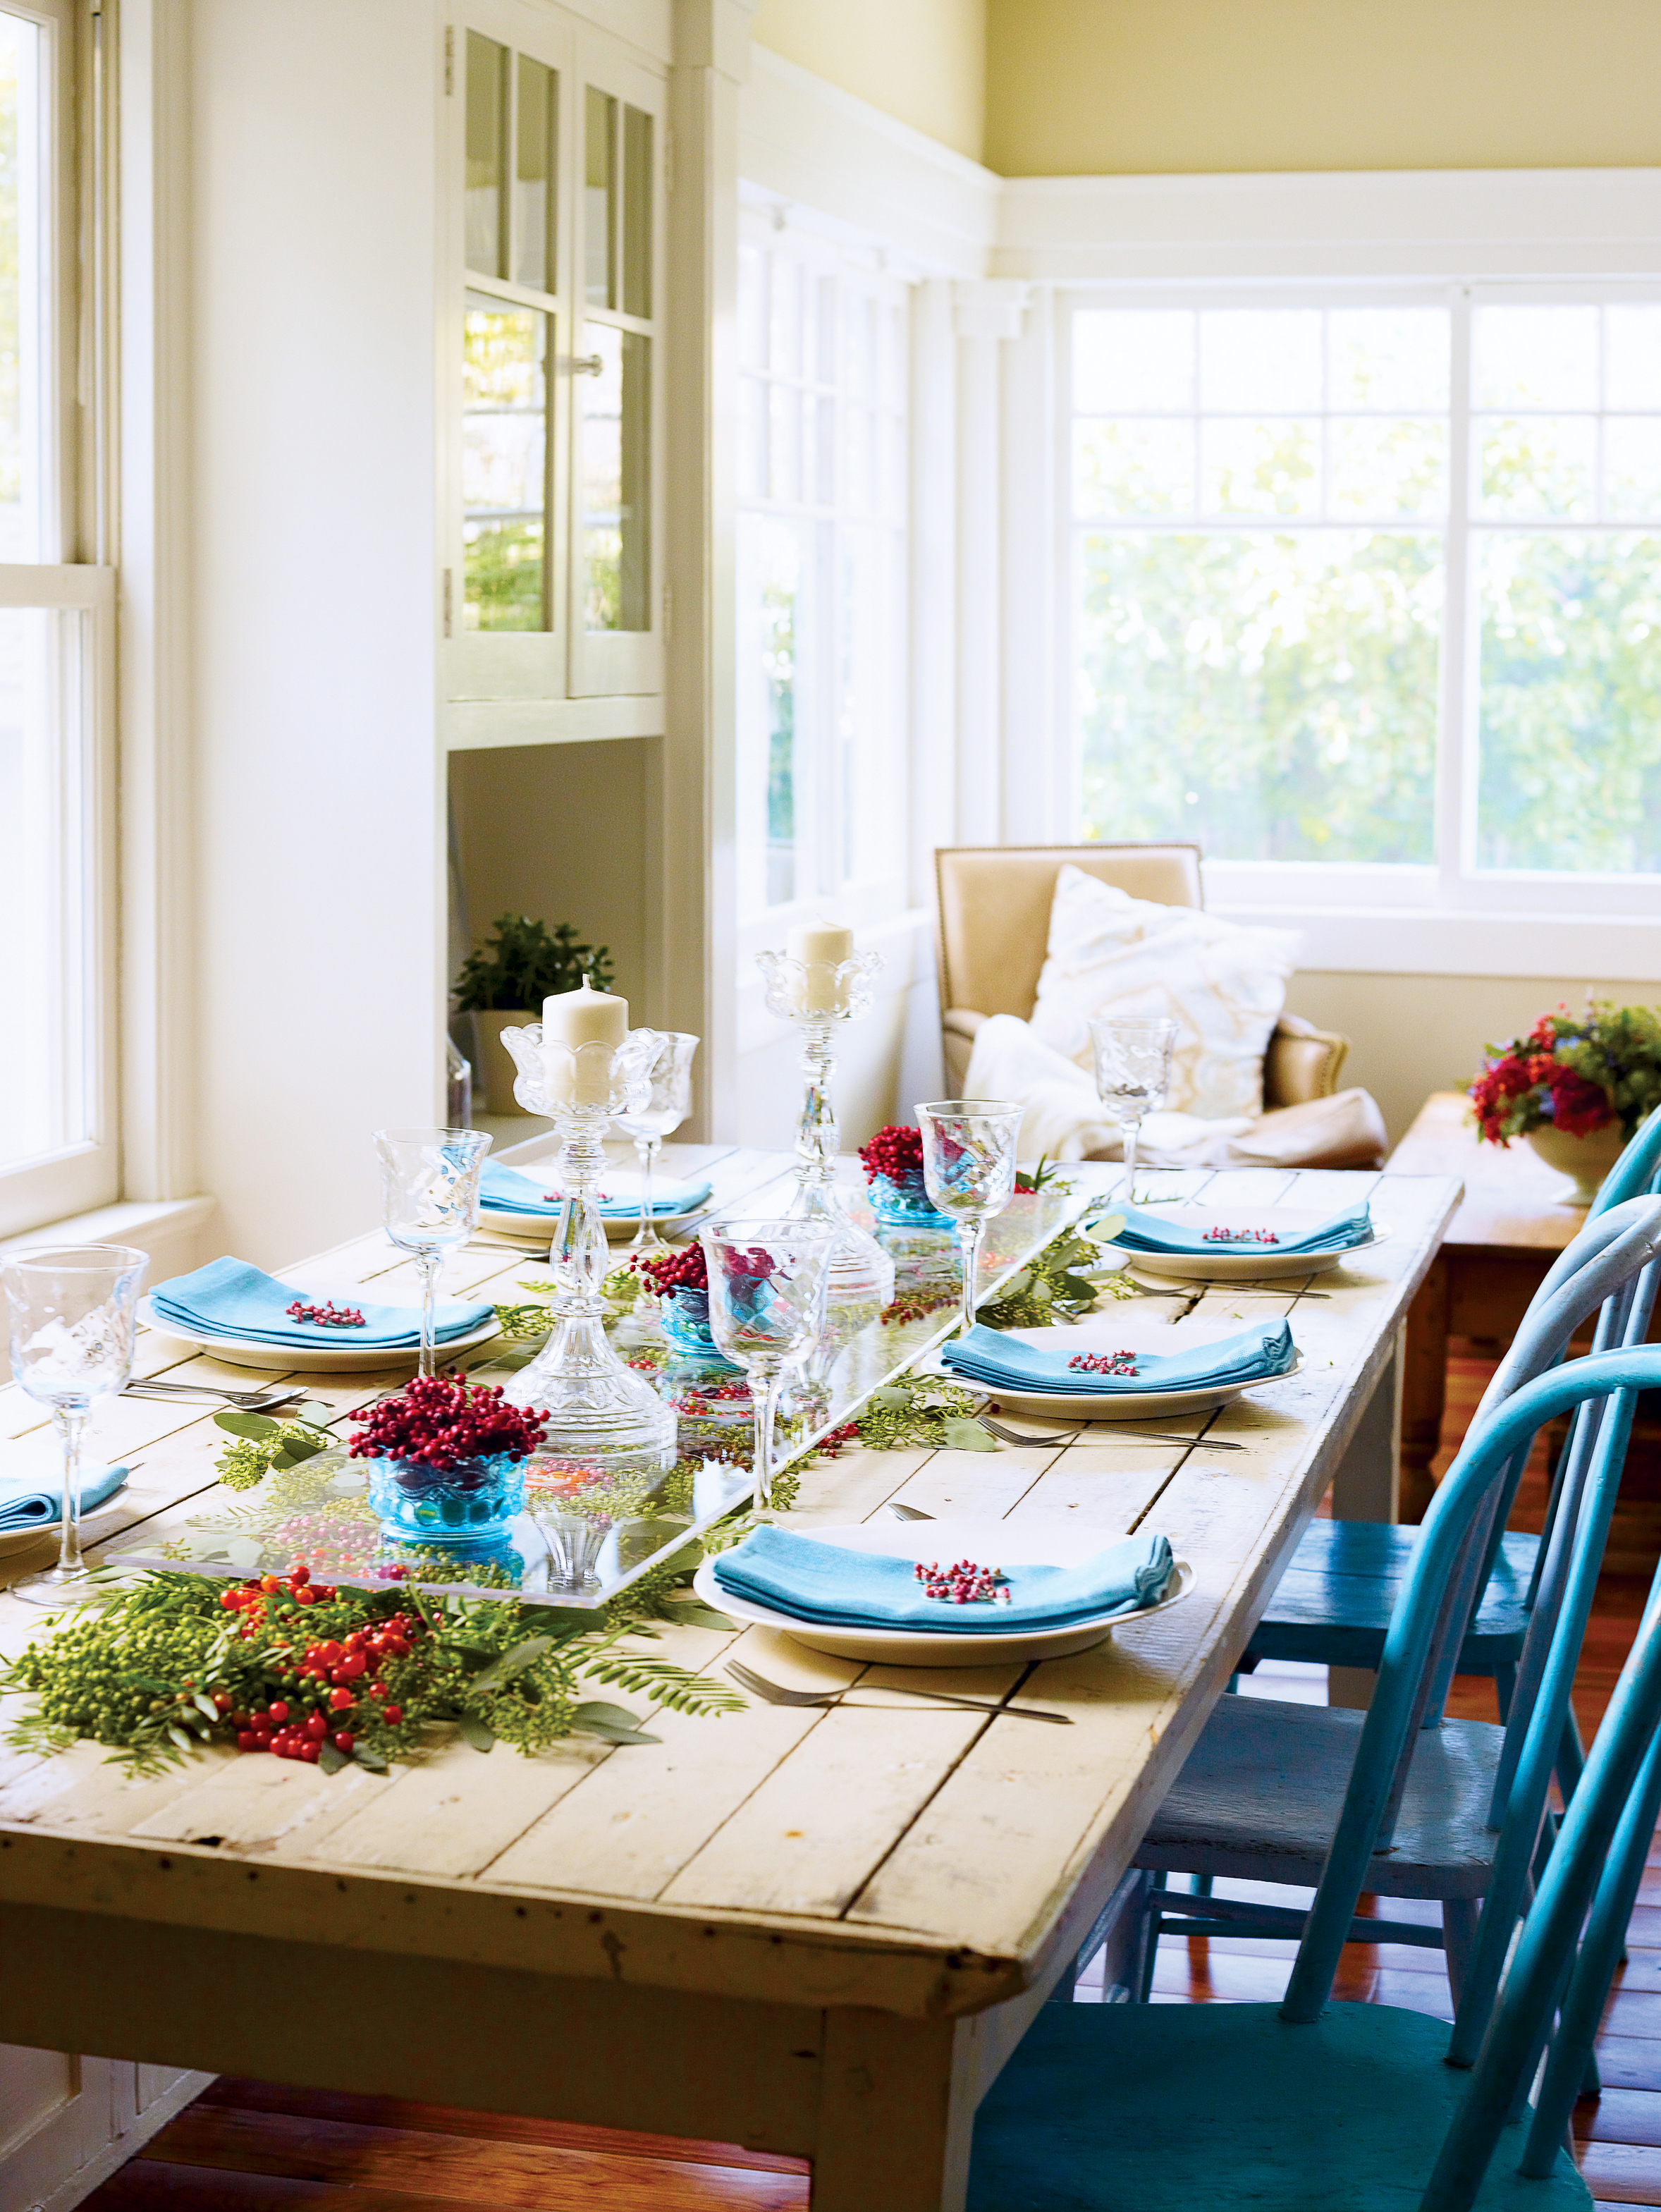 Decorate with Winter Berries - Sunset Magazine